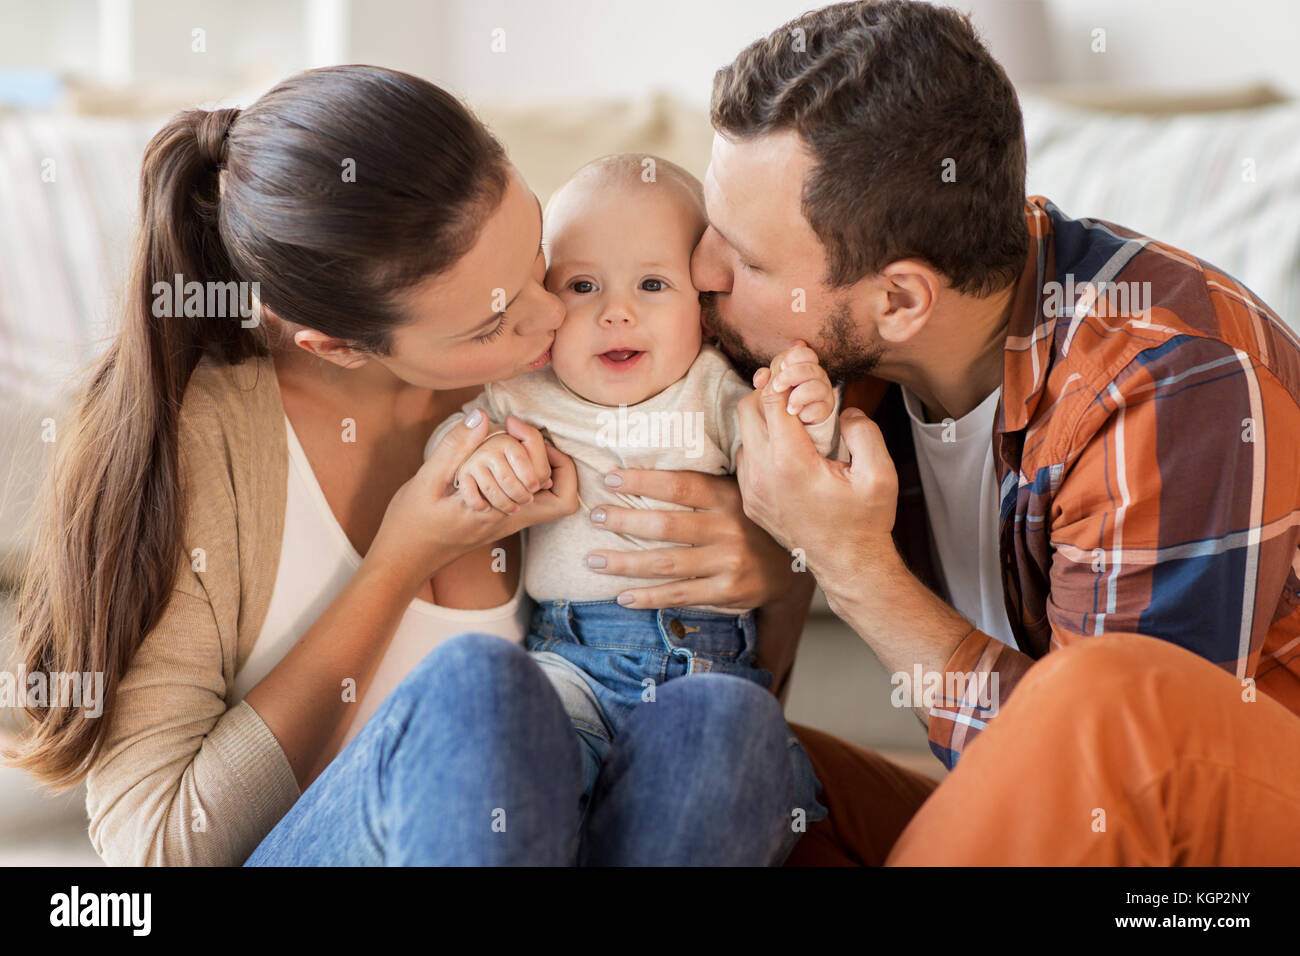 happy mother and father kissing baby at home - Stock Image